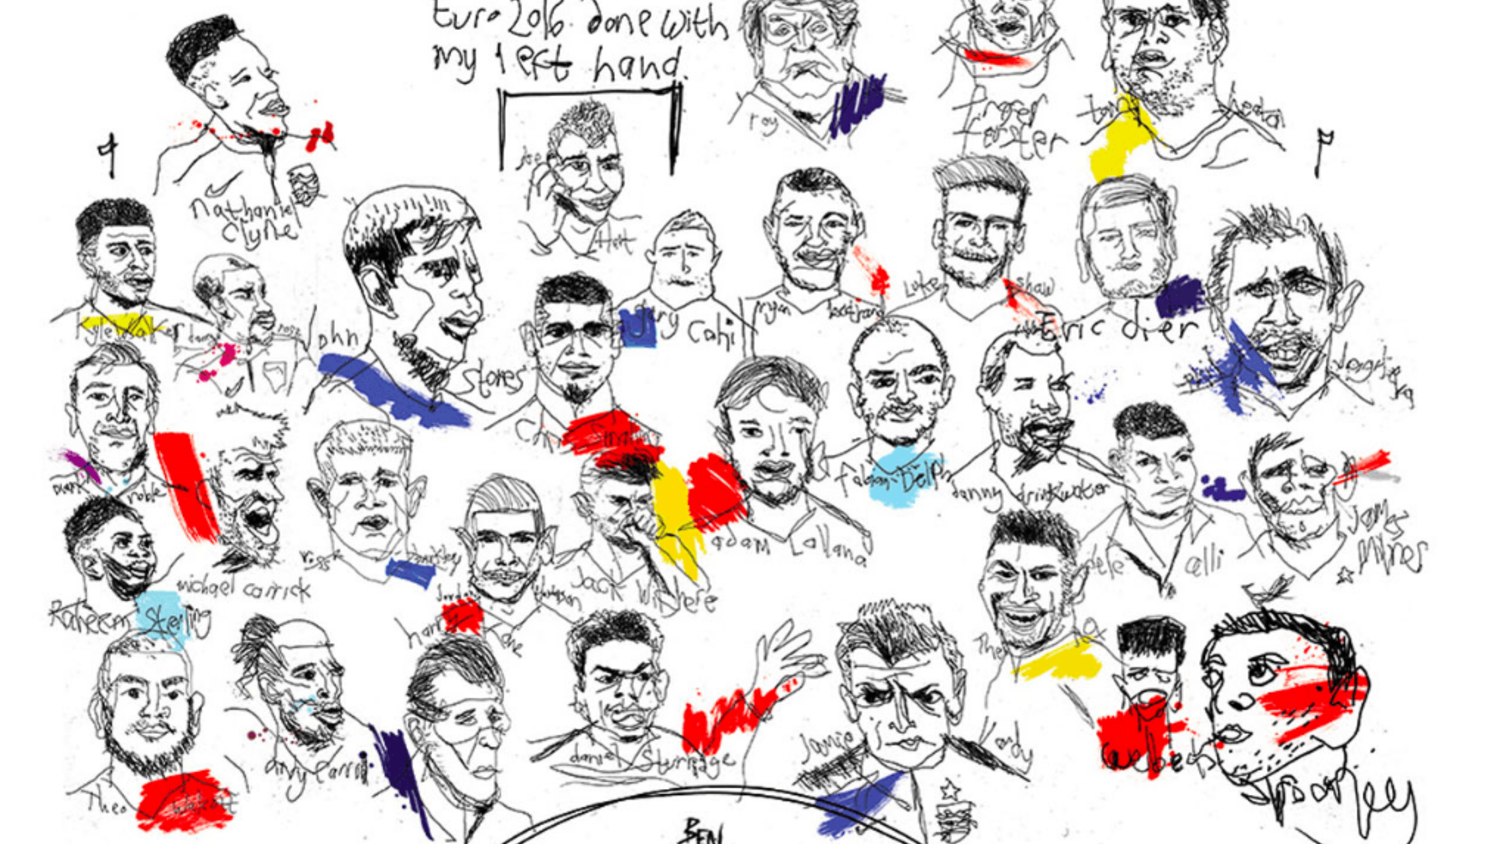 EURO 2016 BAD LEFT HANDED ENGLAND PORTRAITS BY BEN TALLON